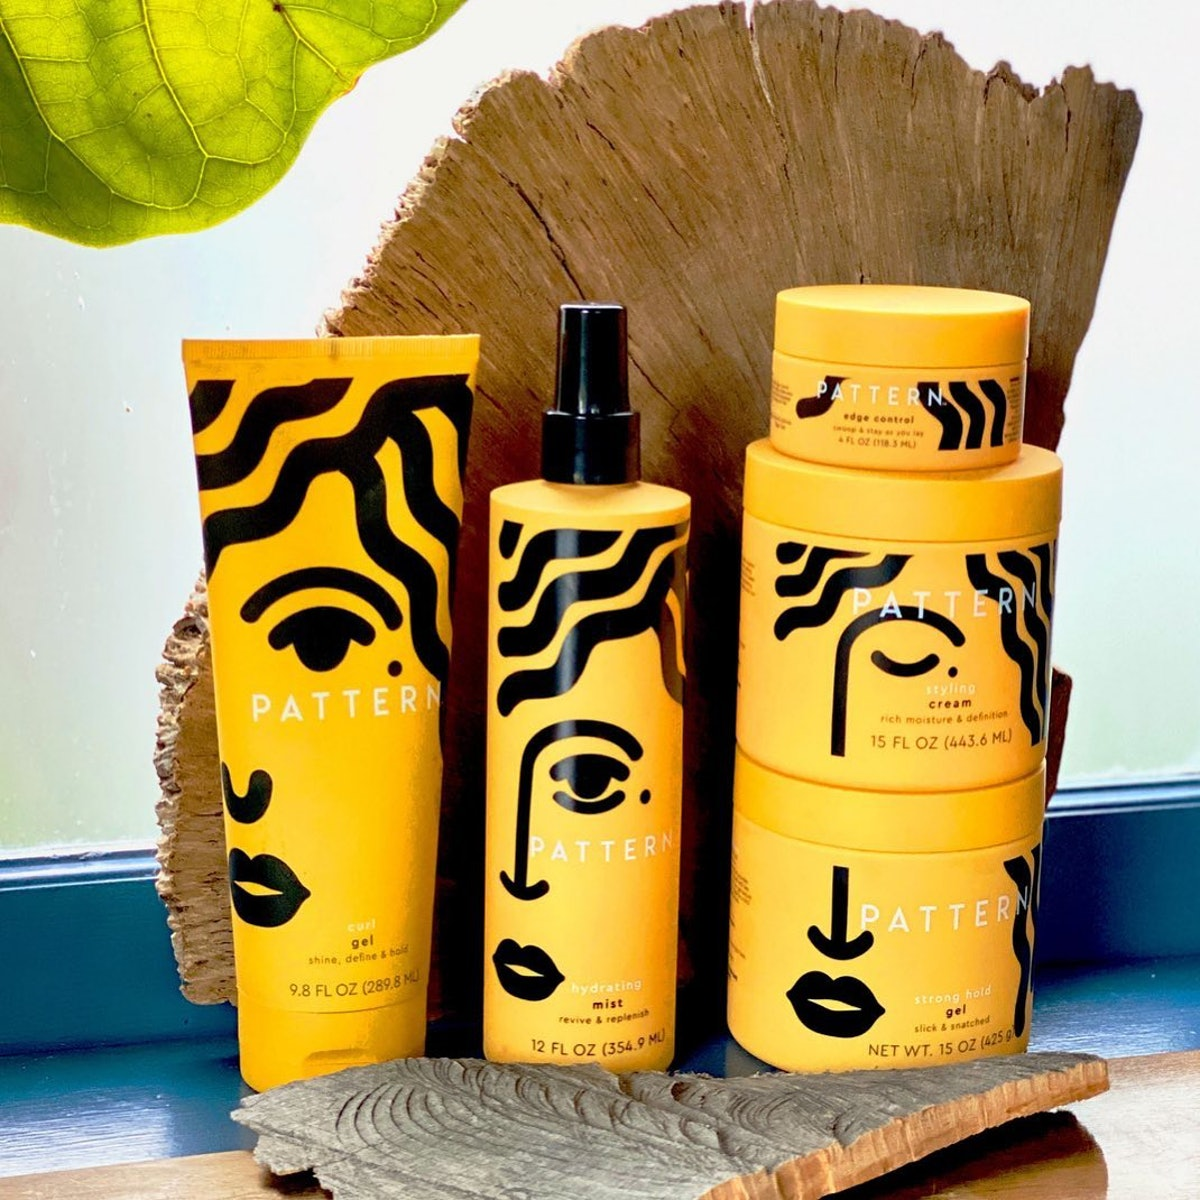 Pattern Beauty launched a new collection of styling products, tools, and accessories on Juneteenth